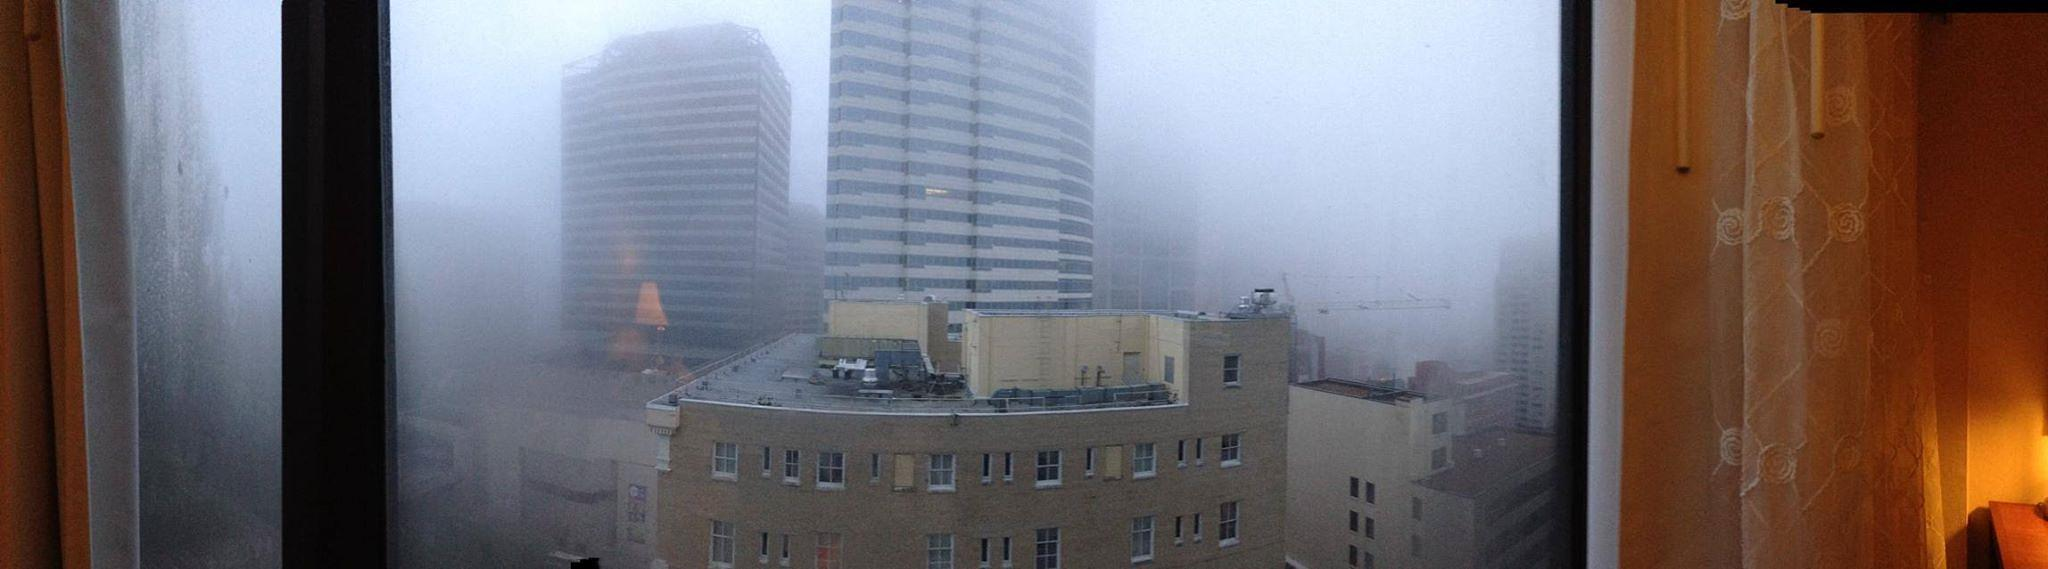 Nashville In The Fog by AllySylum